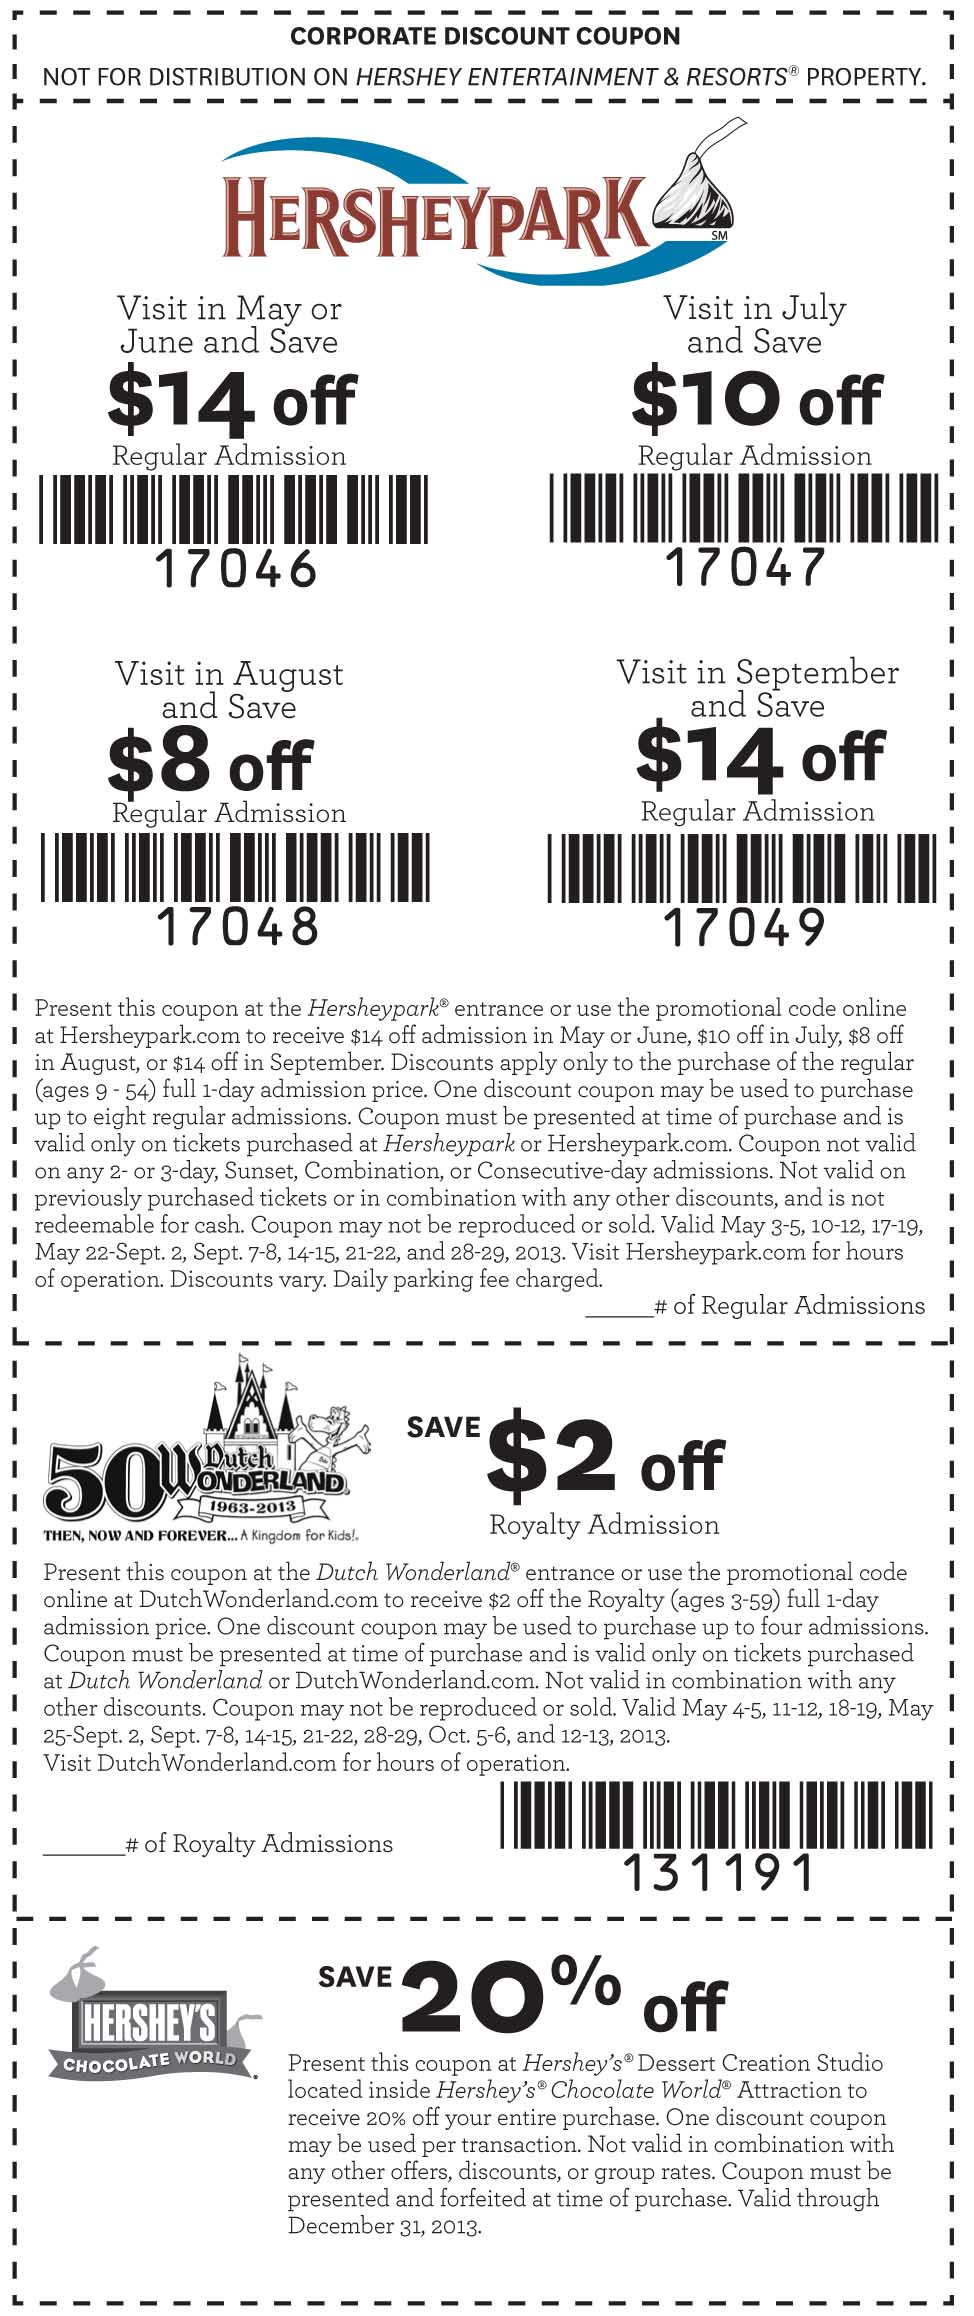 Insanity coupon codes discounts